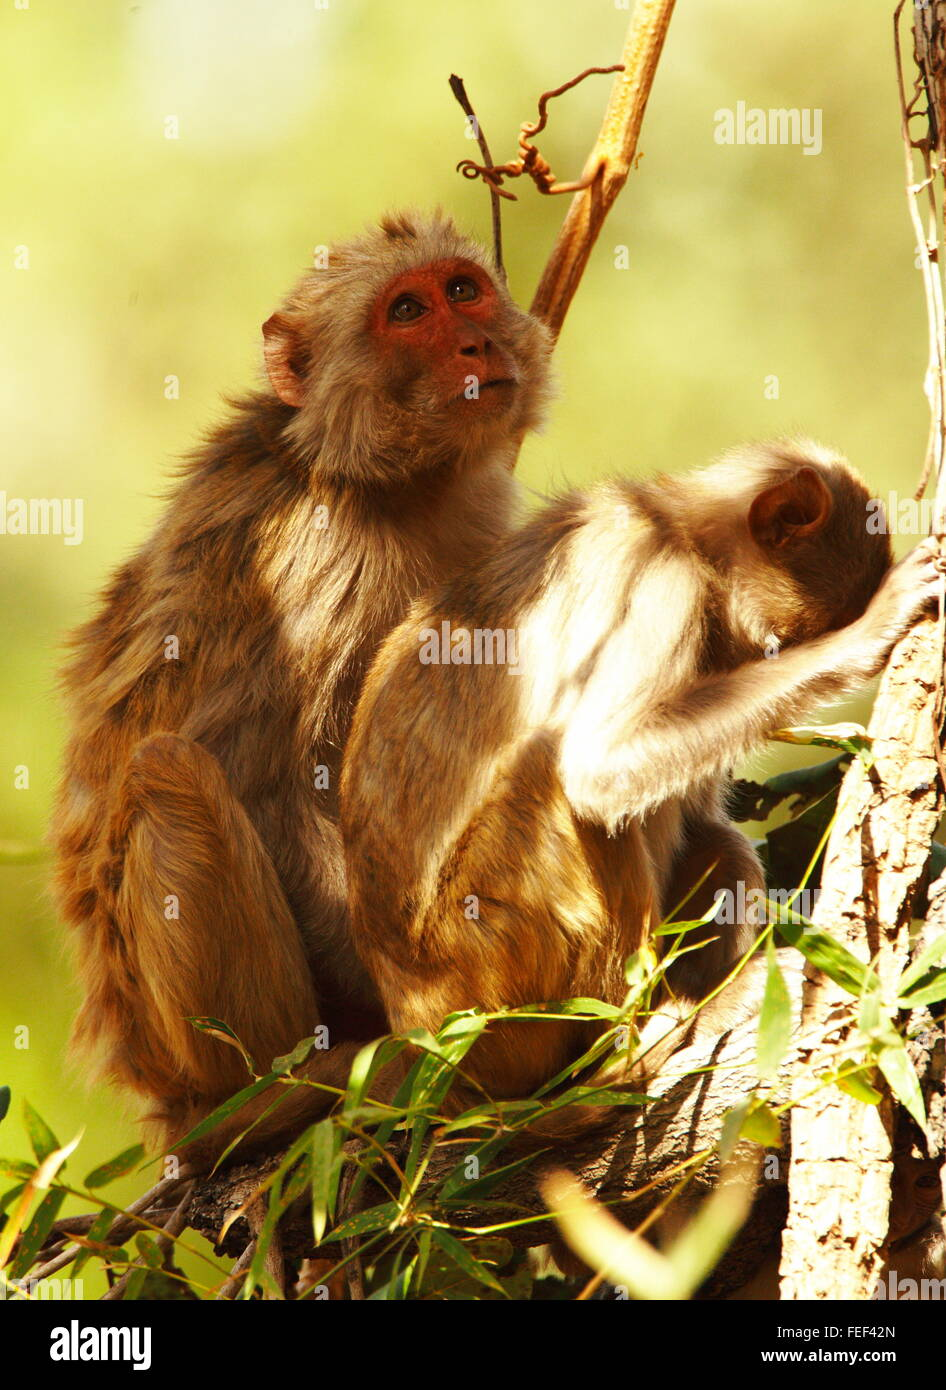 The rhesus macaque (Macaca mulatta) Pair in a tree India - Stock Image